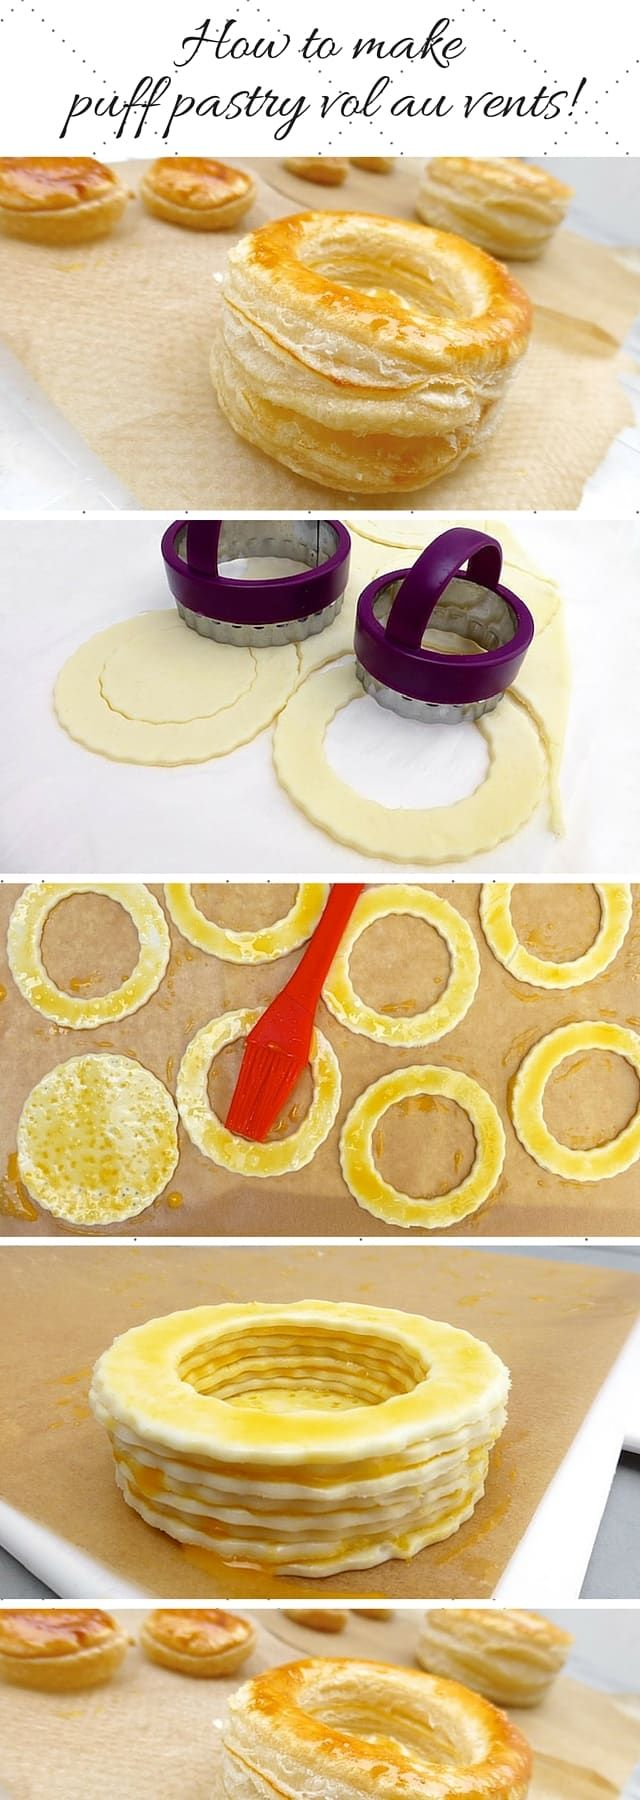 How to make vol au vents puff pastry cups: a step-by-step picture guide!